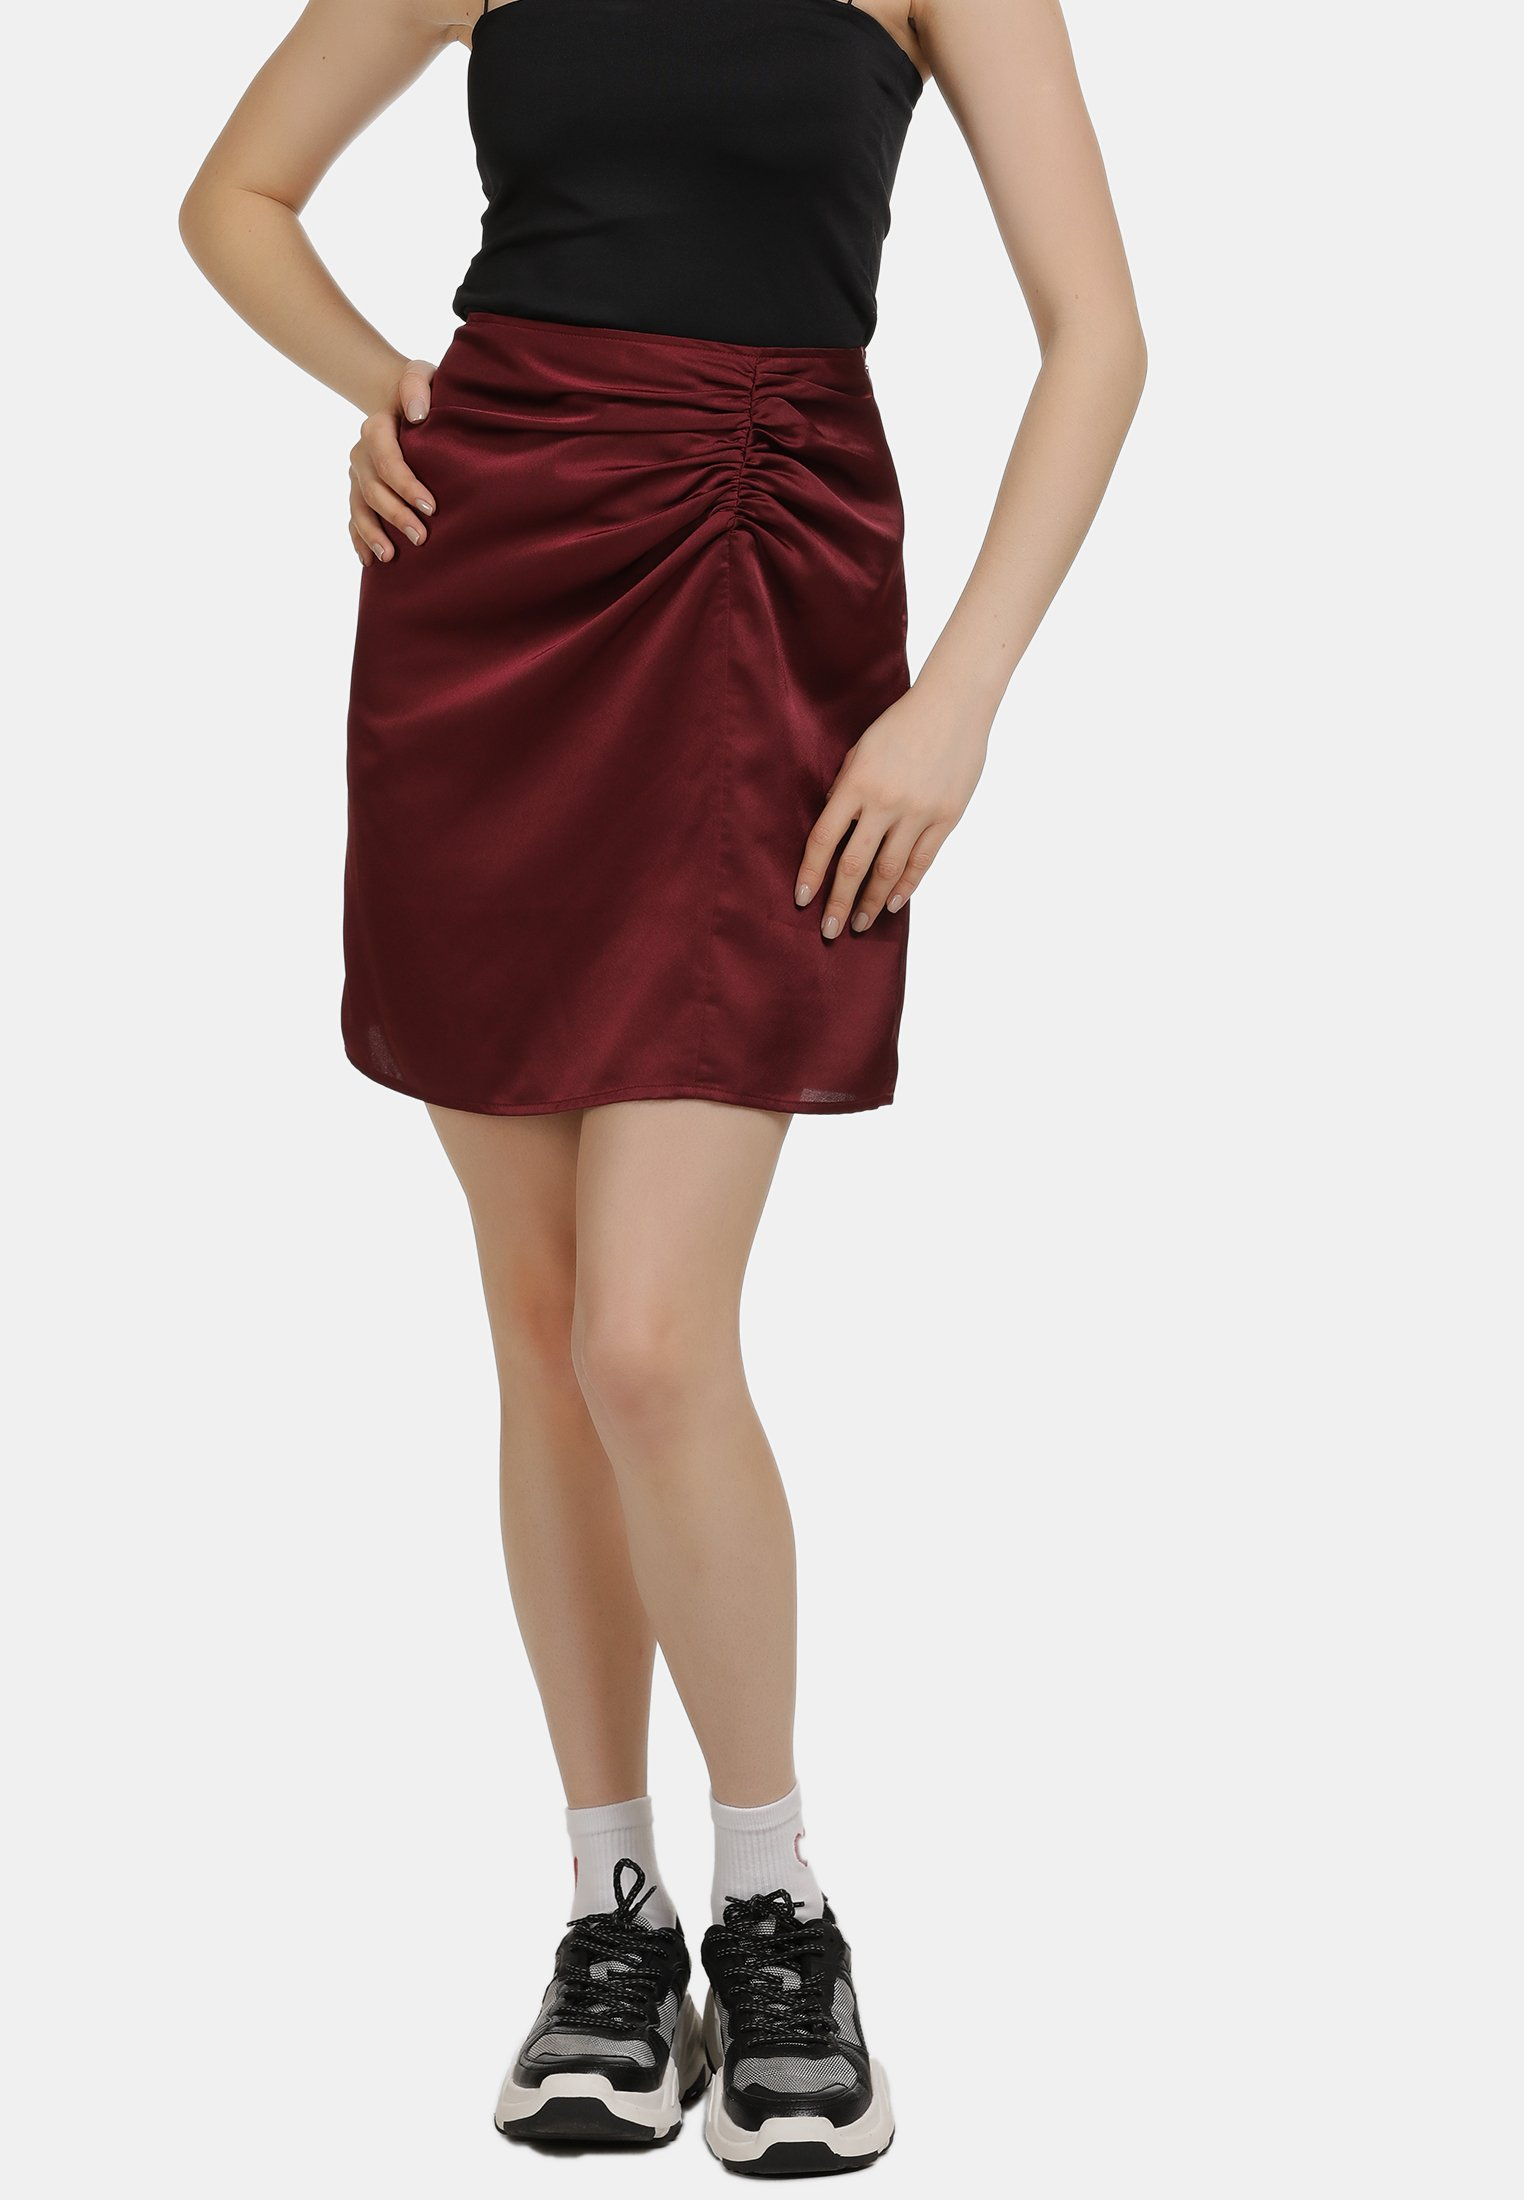 Discount Women's Clothing myMo A-line skirt beere 2LLhhUVX5